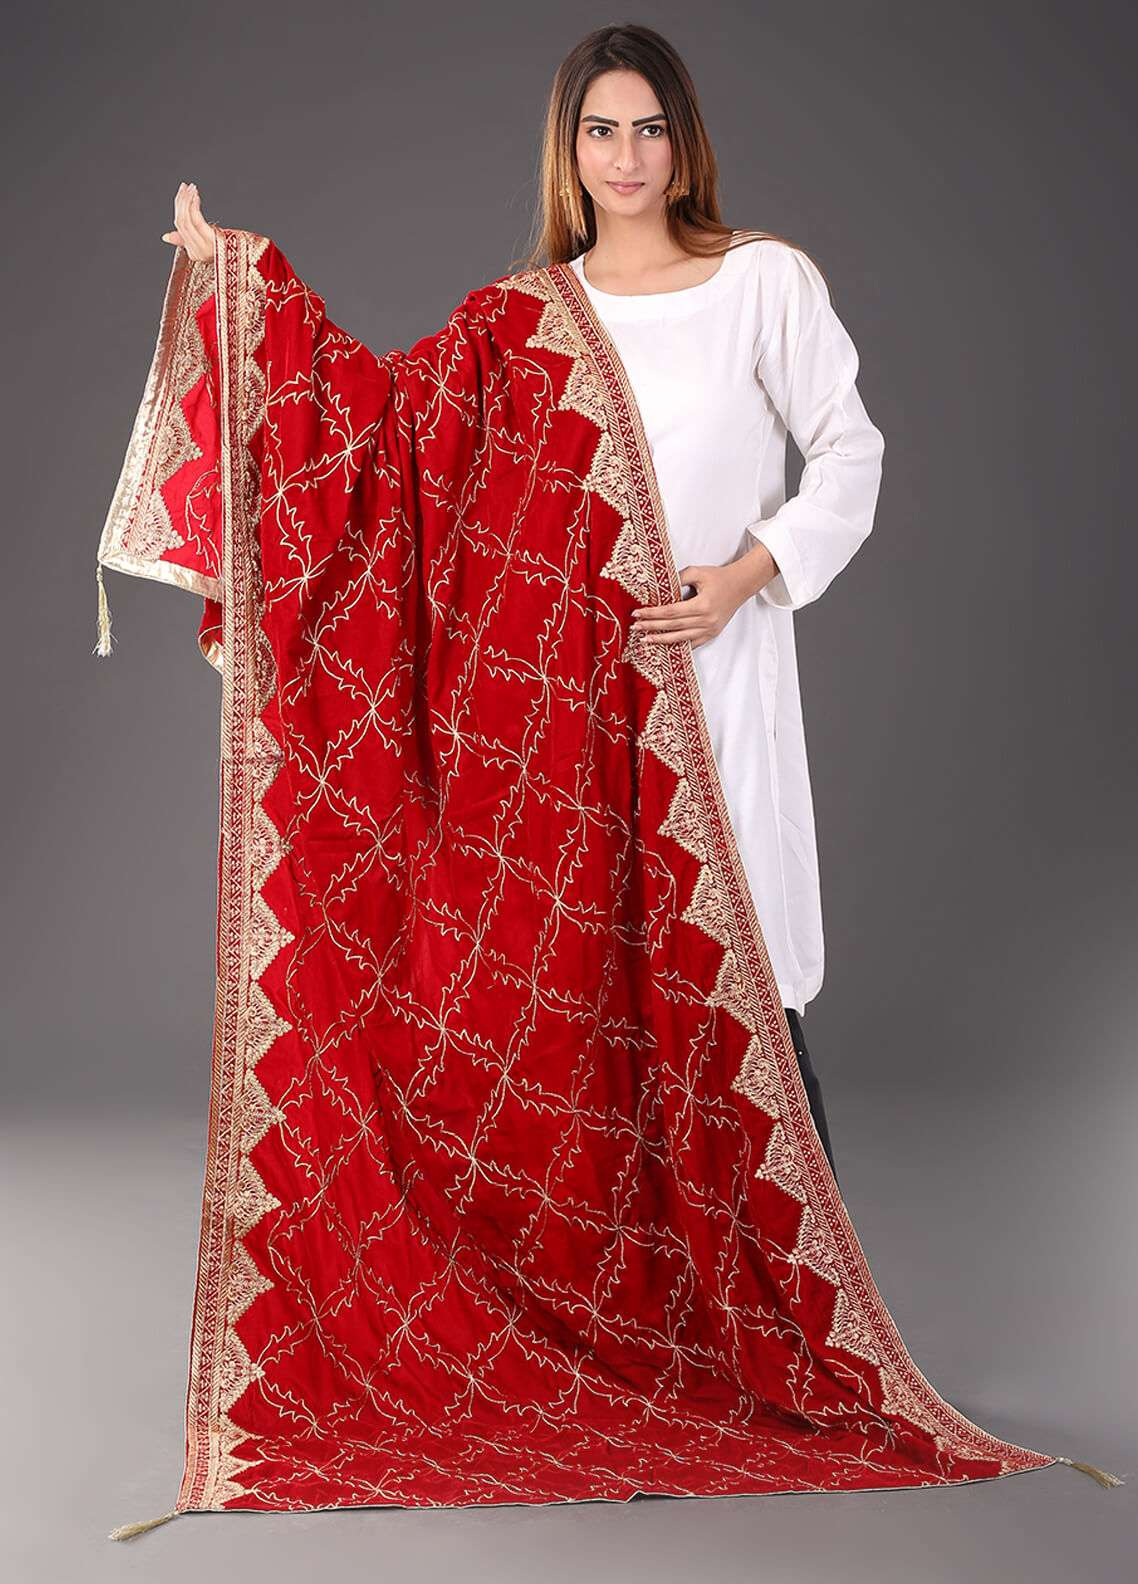 Sanaulla Exclusive Range Embroidered Velvet  Shawl 469 - Winter Collection